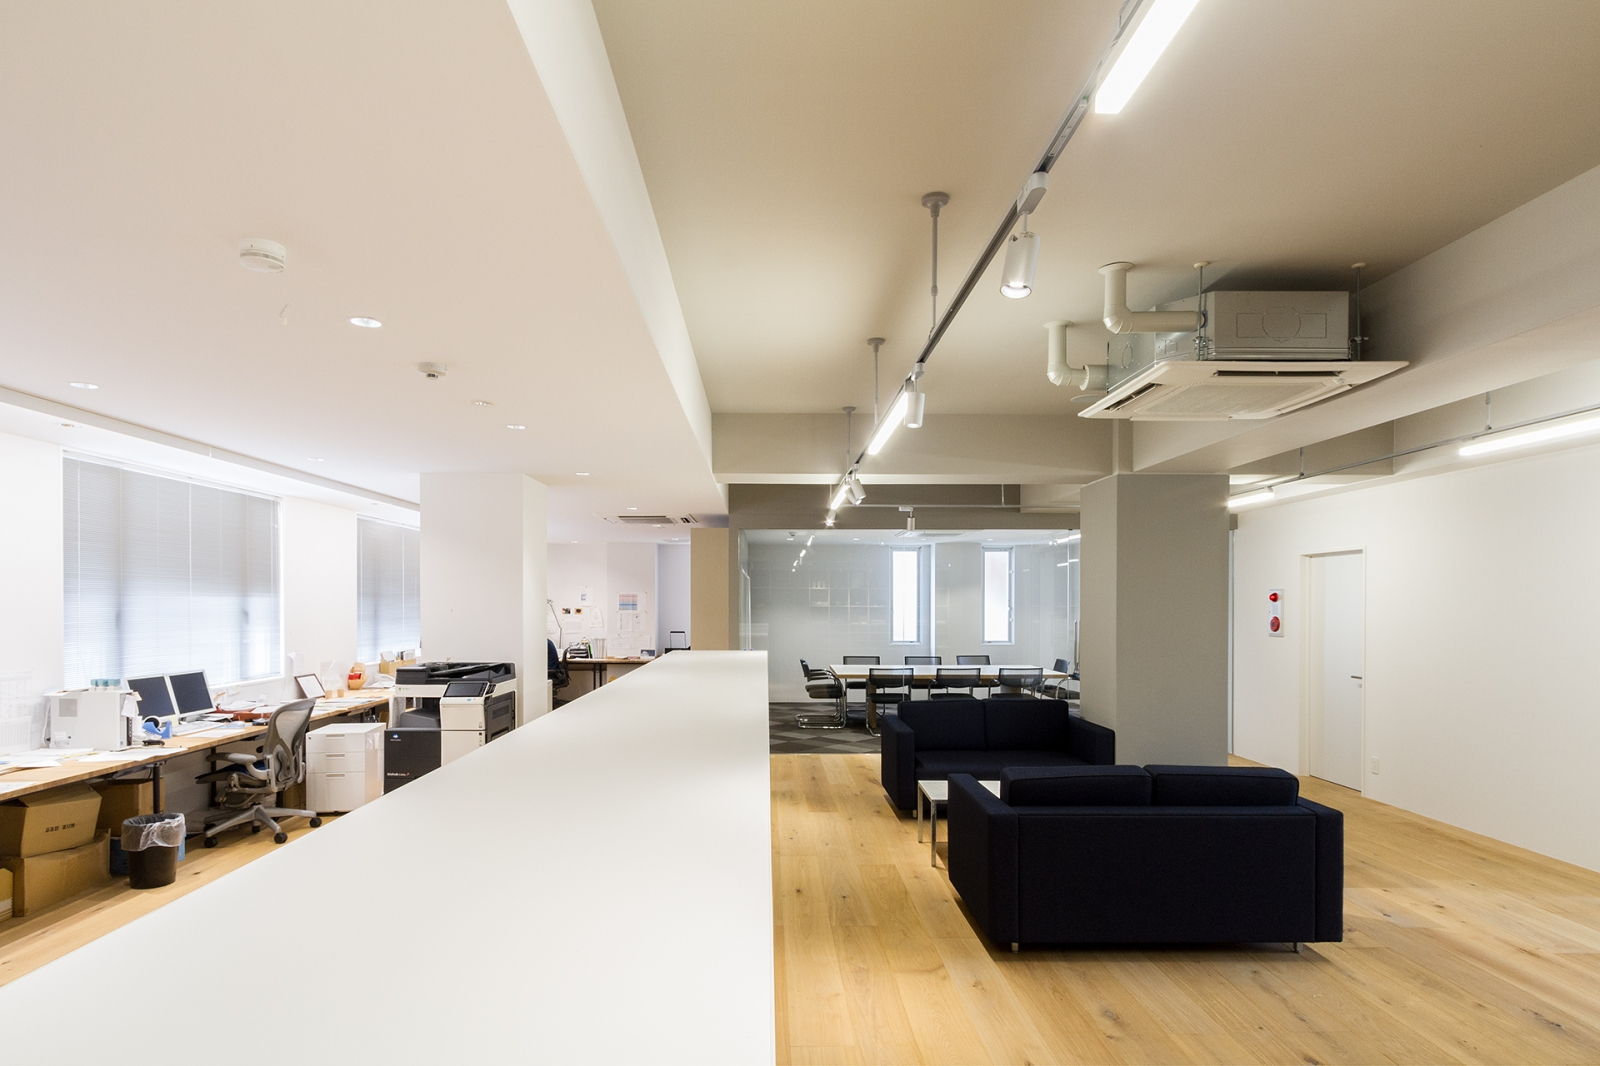 eight one co., ltd. Office-image10